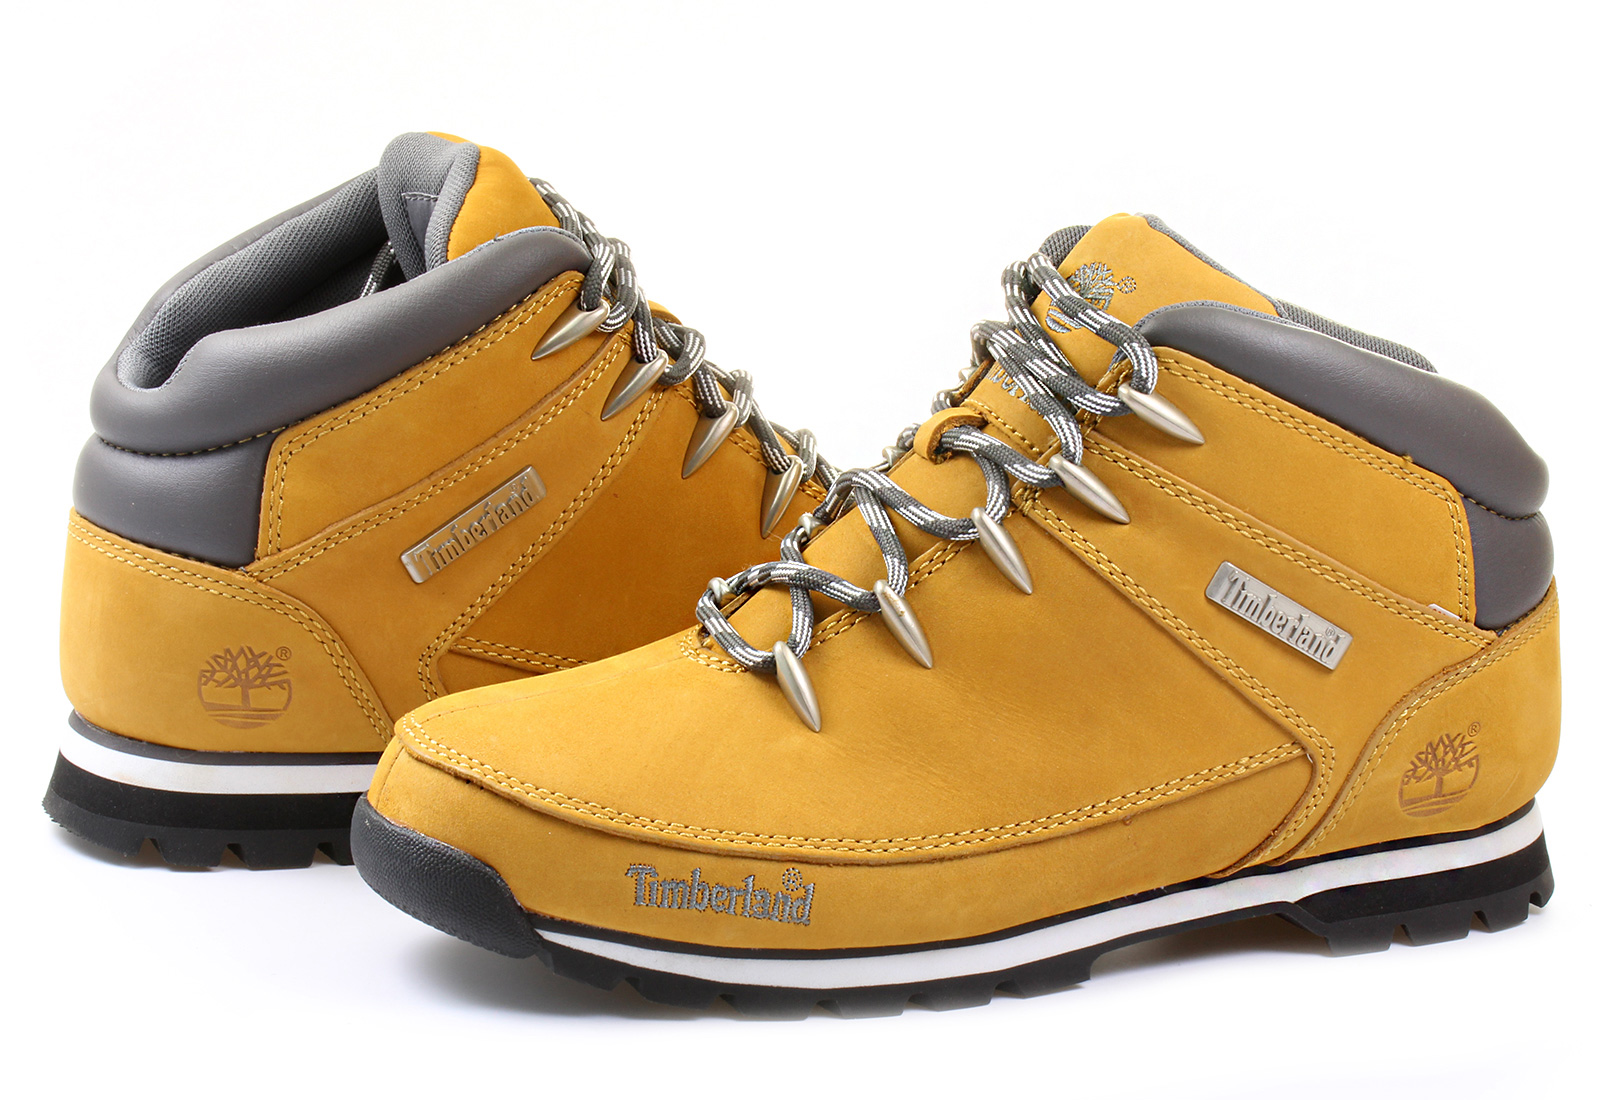 Timberland Boots - euro sprint - 6222r-whe - Online shop ...